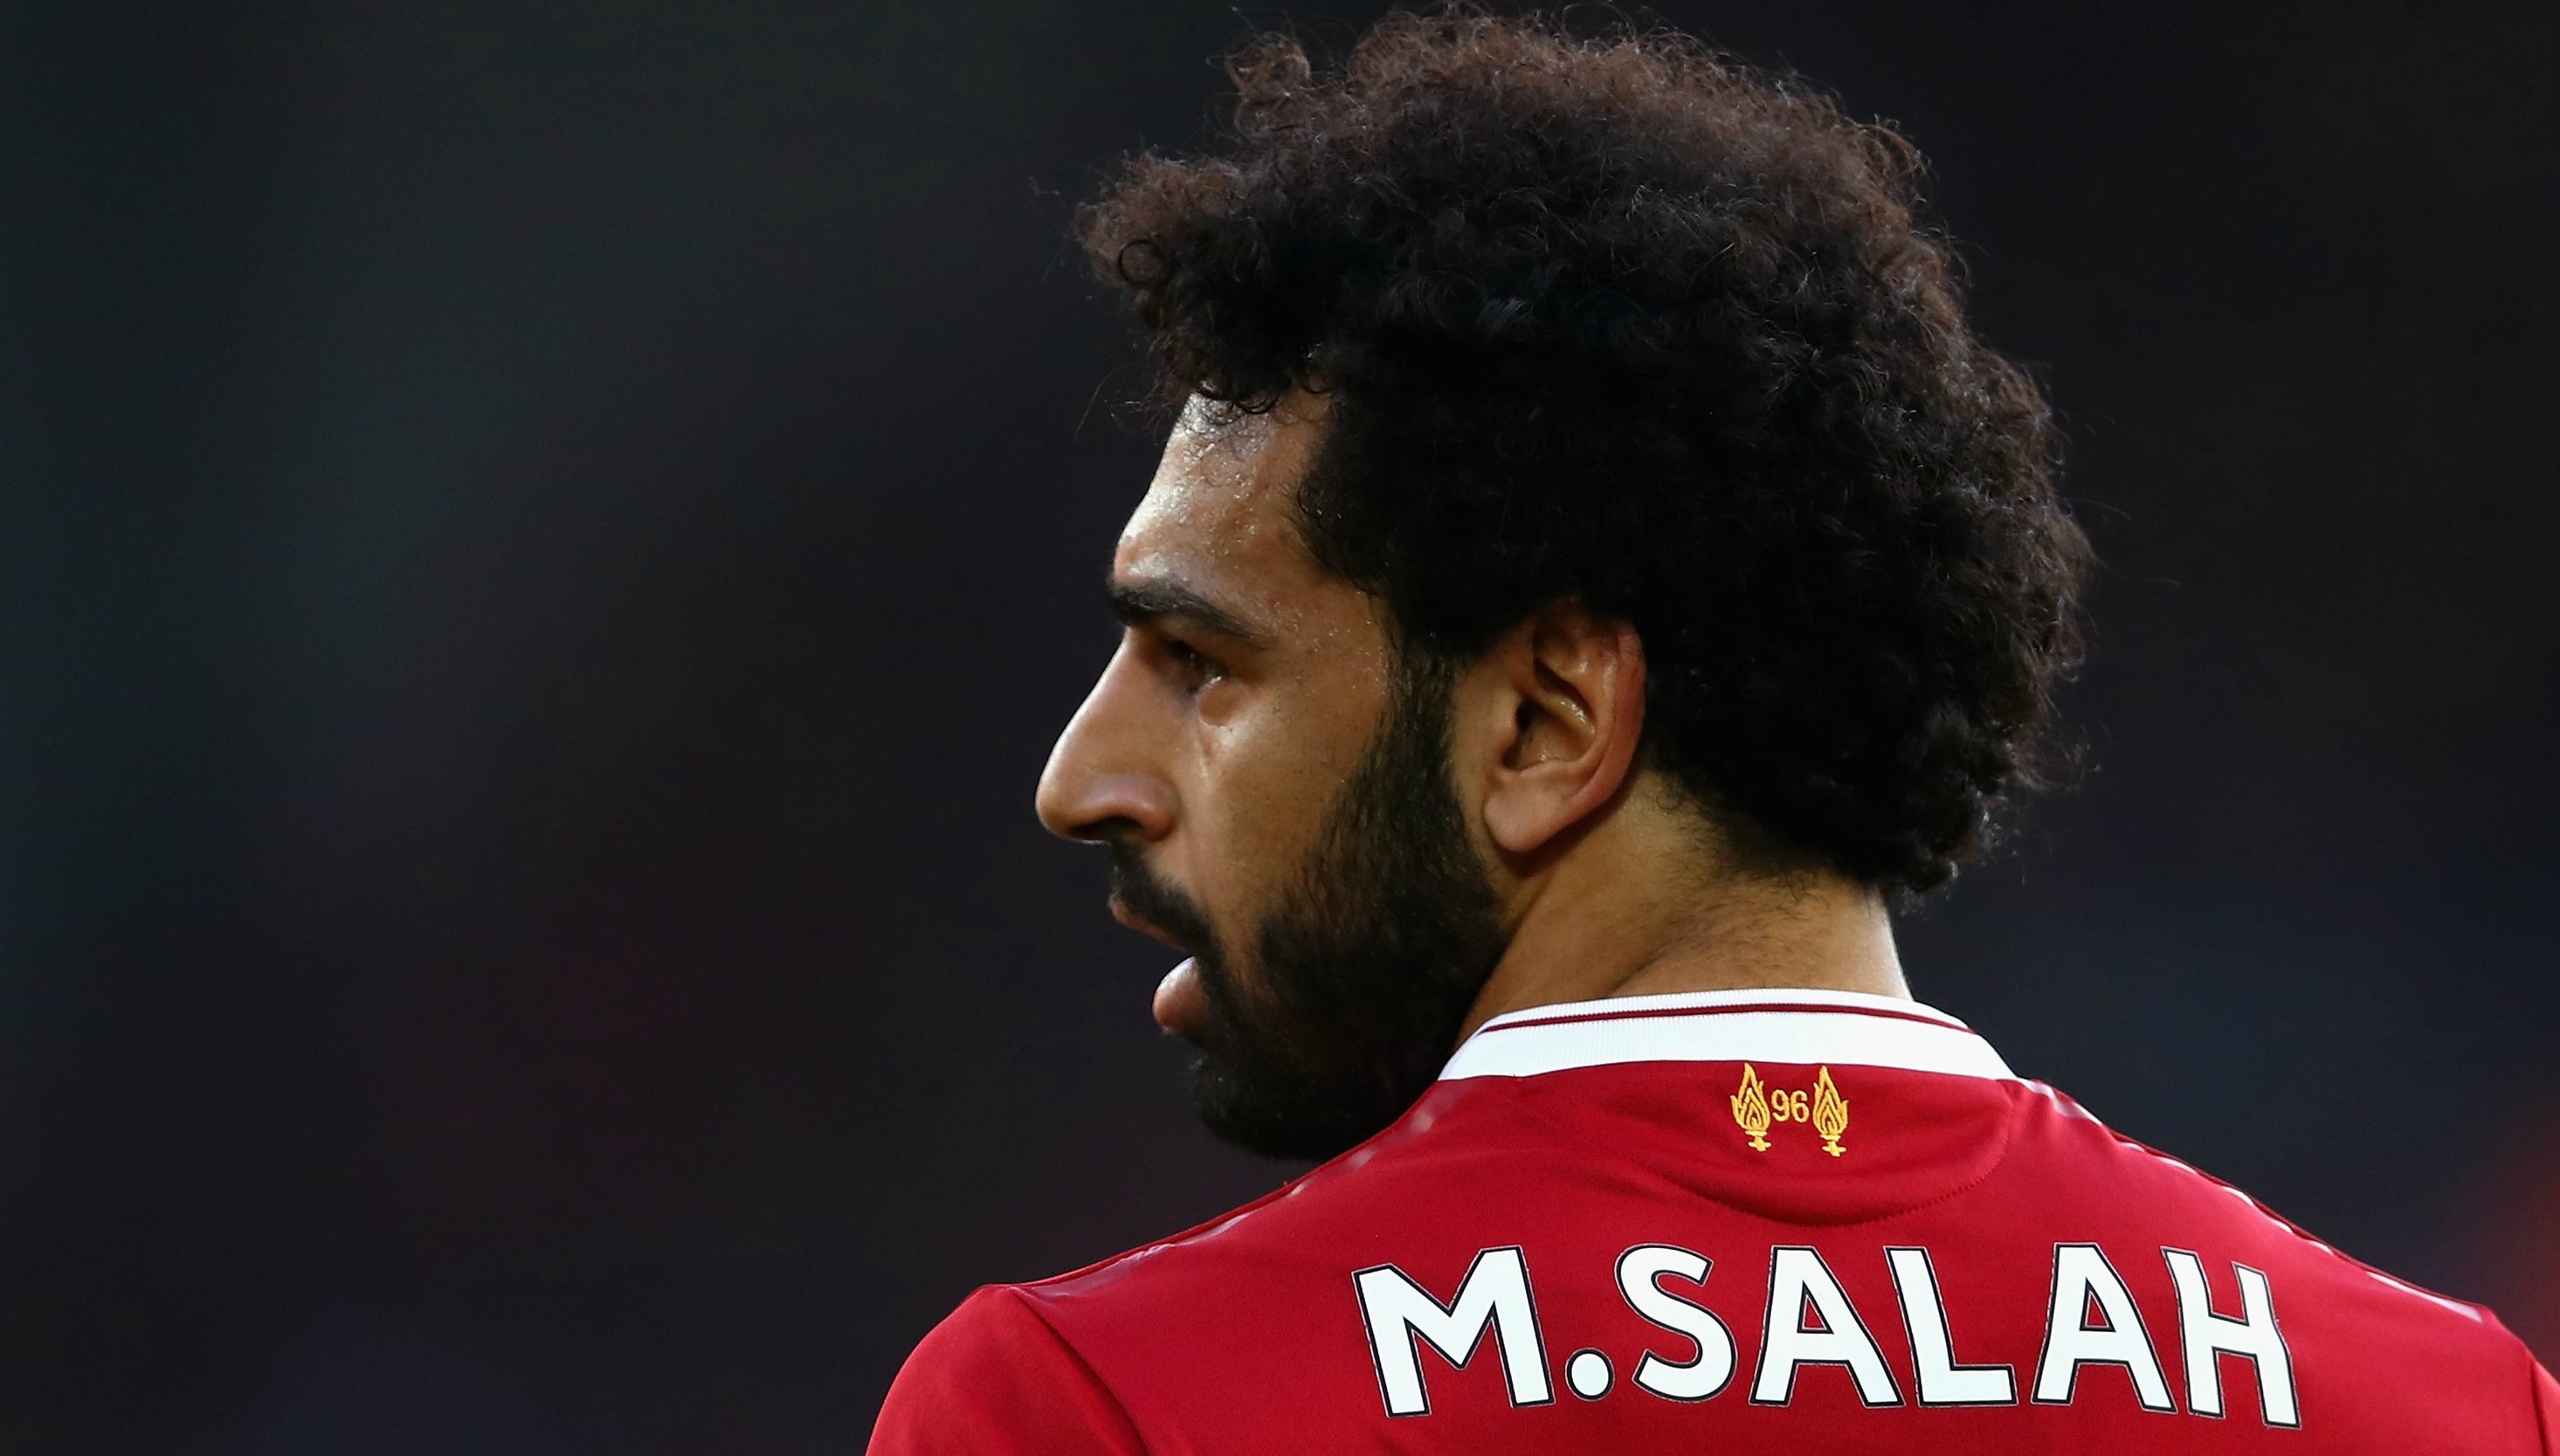 ff947ddf399 Humble Liverpool star Mohamed Salah uses money to help hometown in Egypt